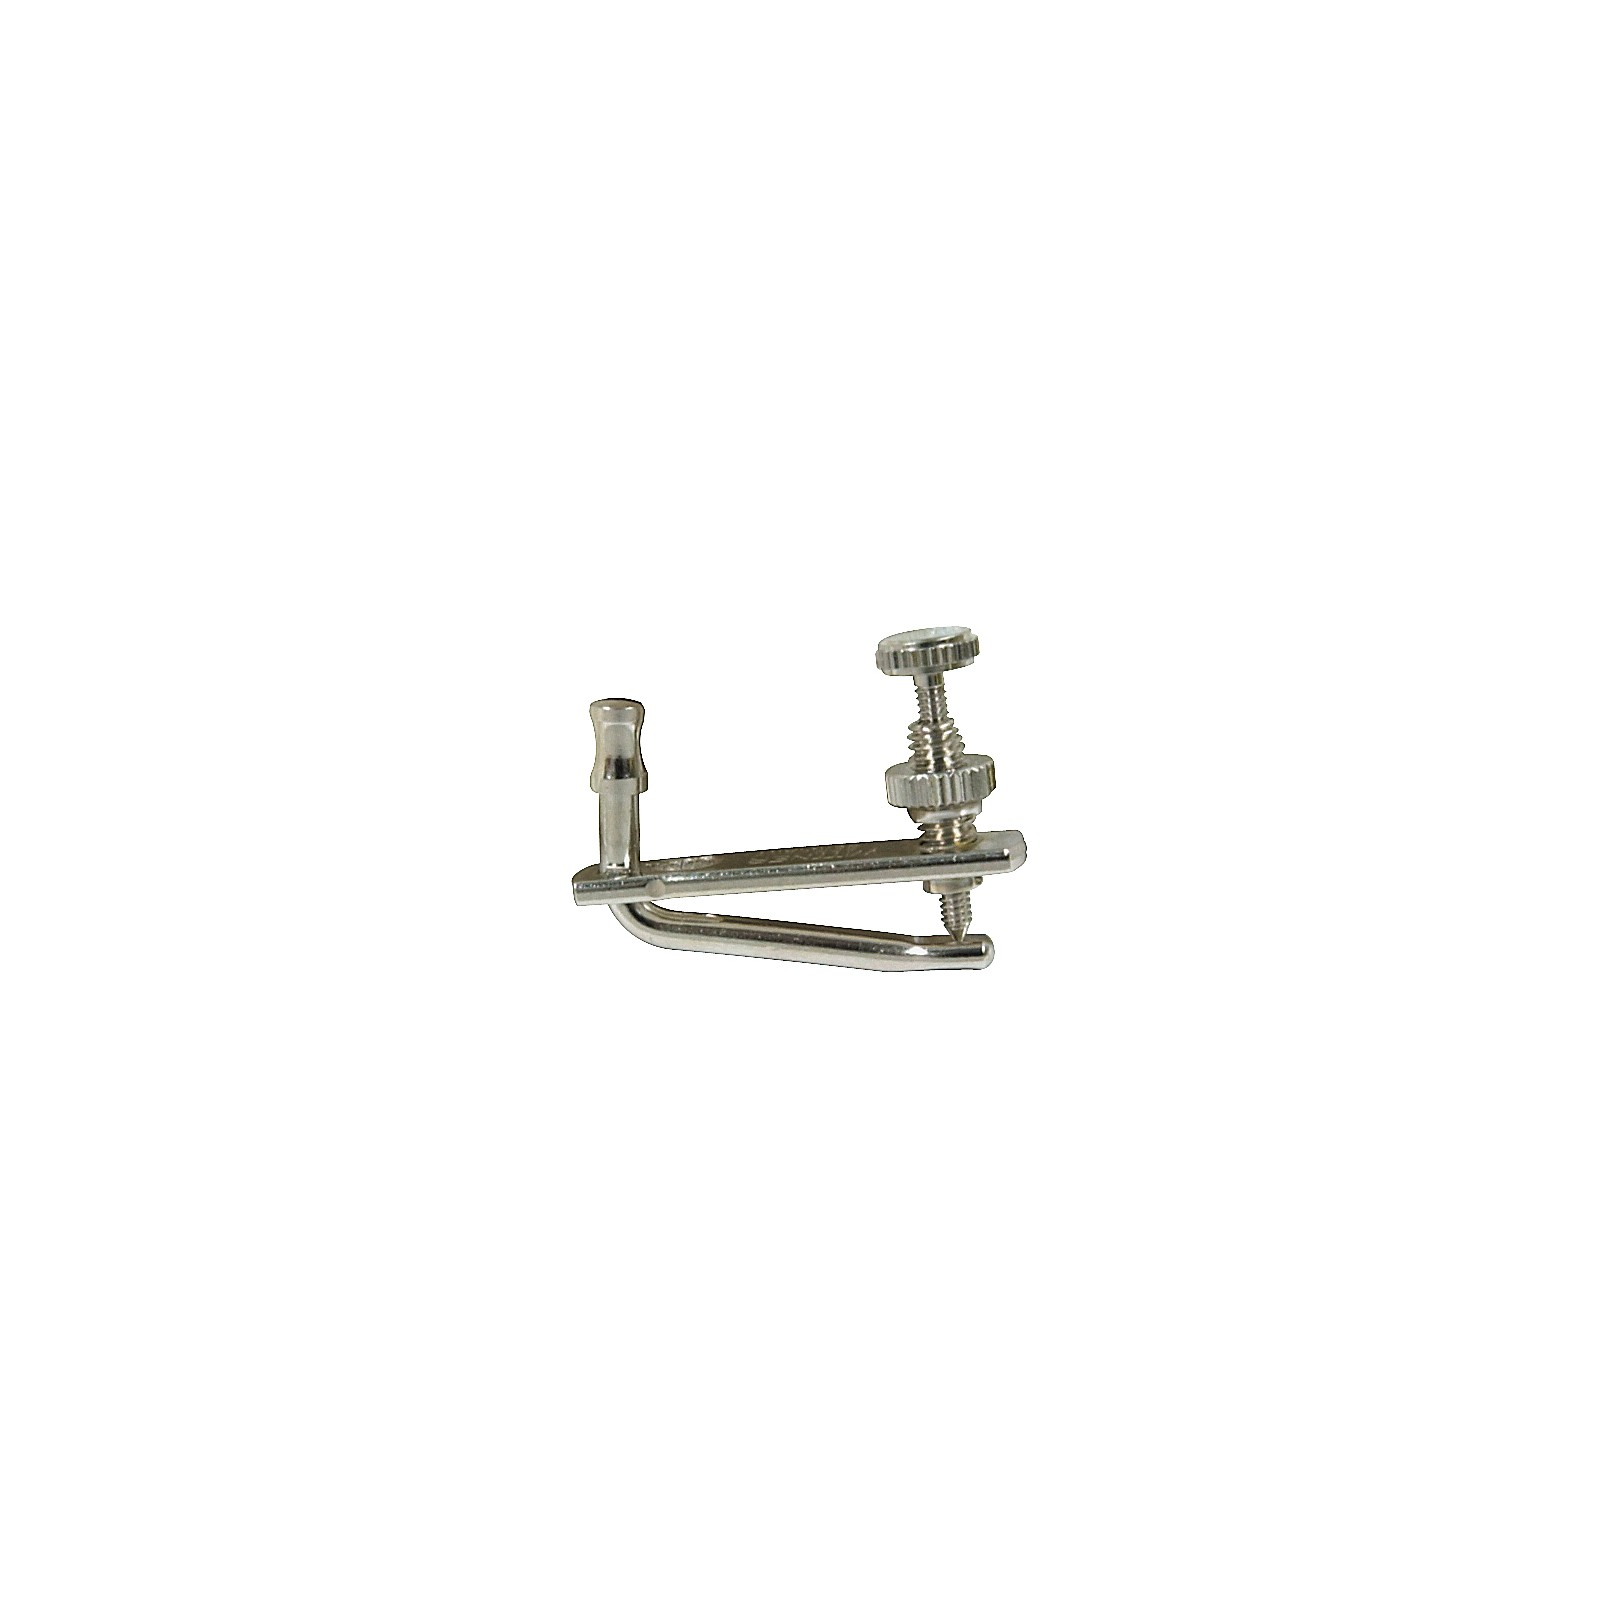 Wittner Violin String Adjuster Fixed on Tailpiece